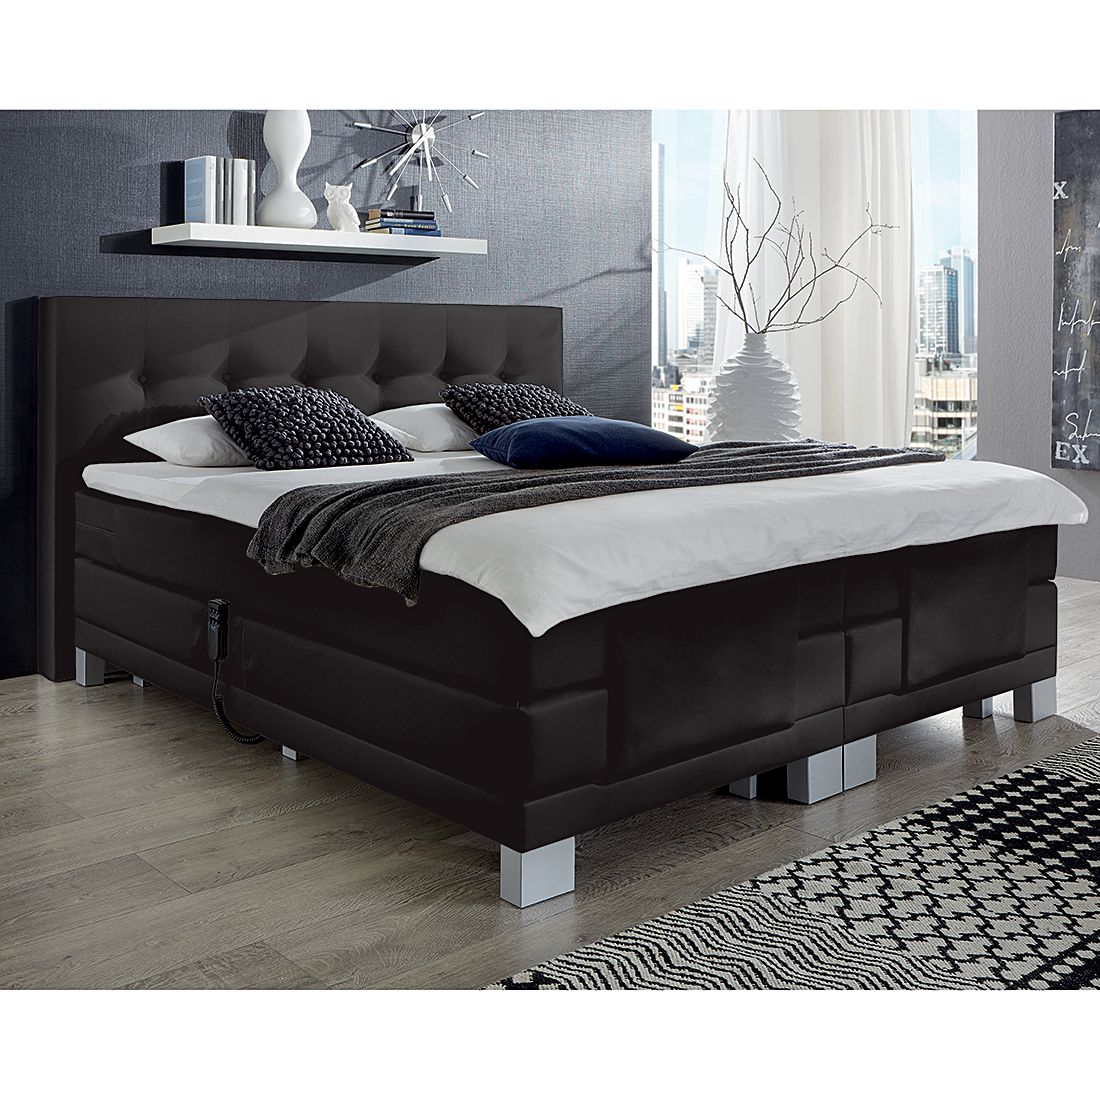 54 sparen boxspringbett diamond night nur. Black Bedroom Furniture Sets. Home Design Ideas